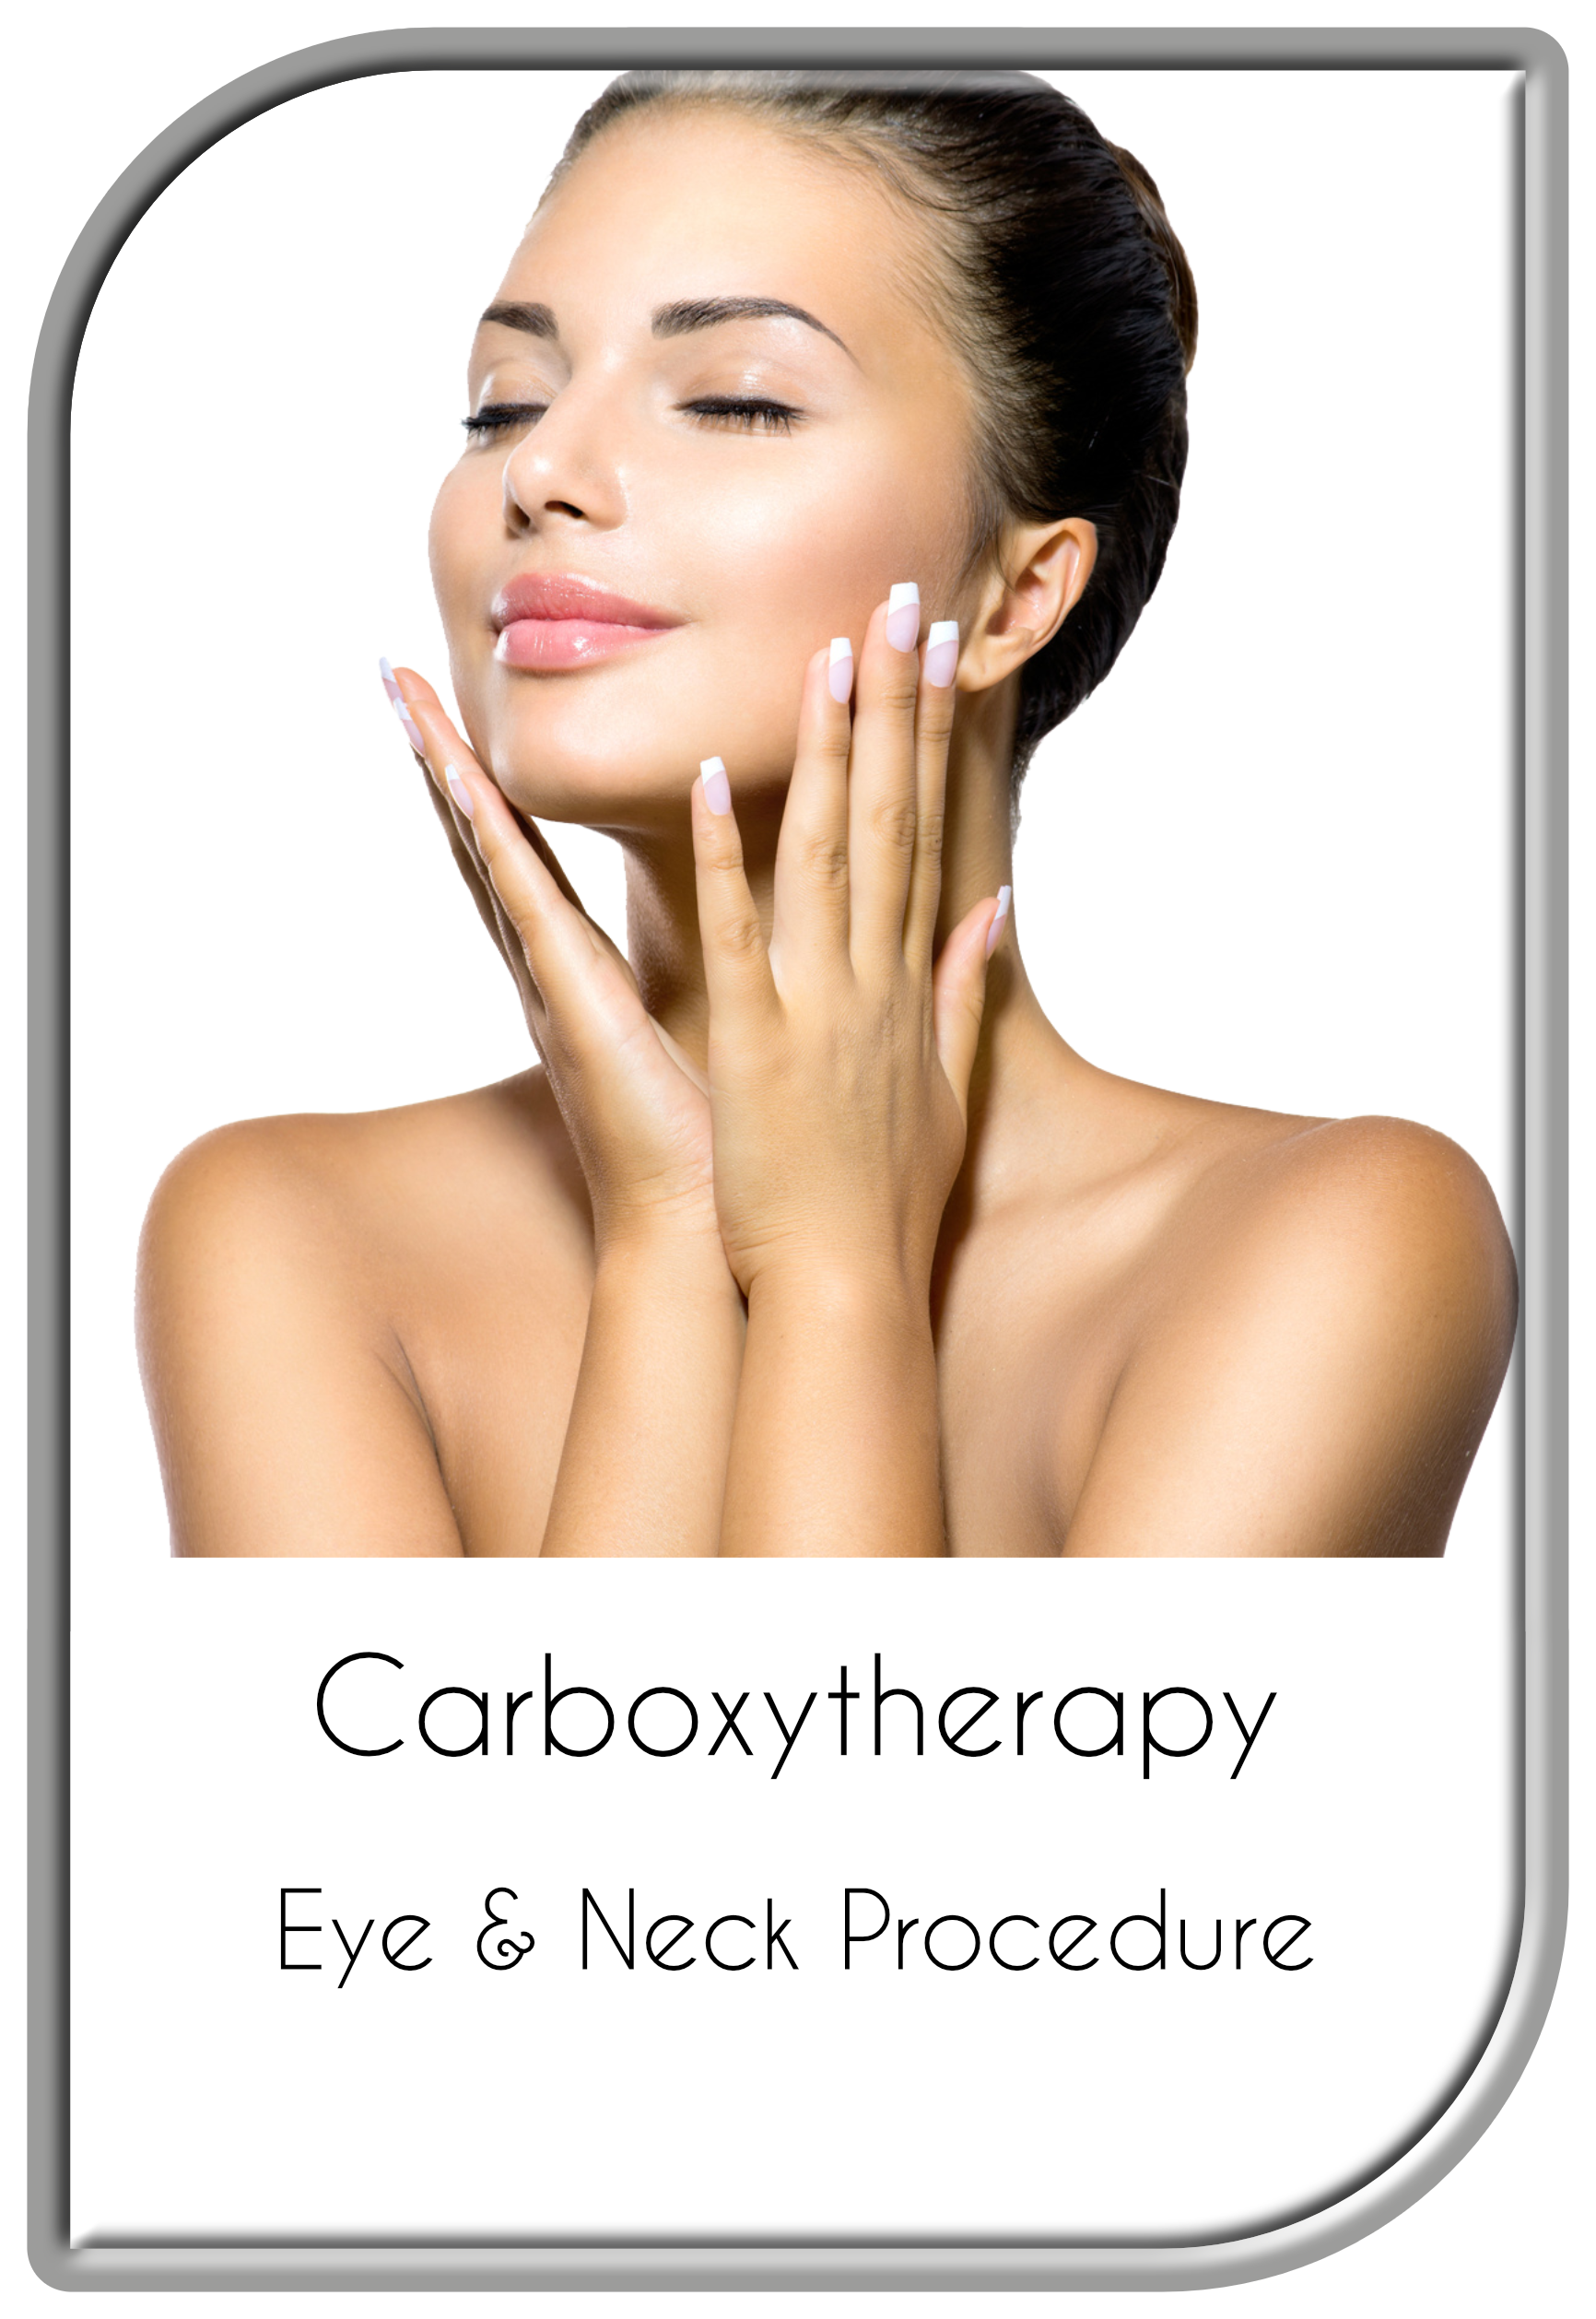 Carboxytherapy for Face